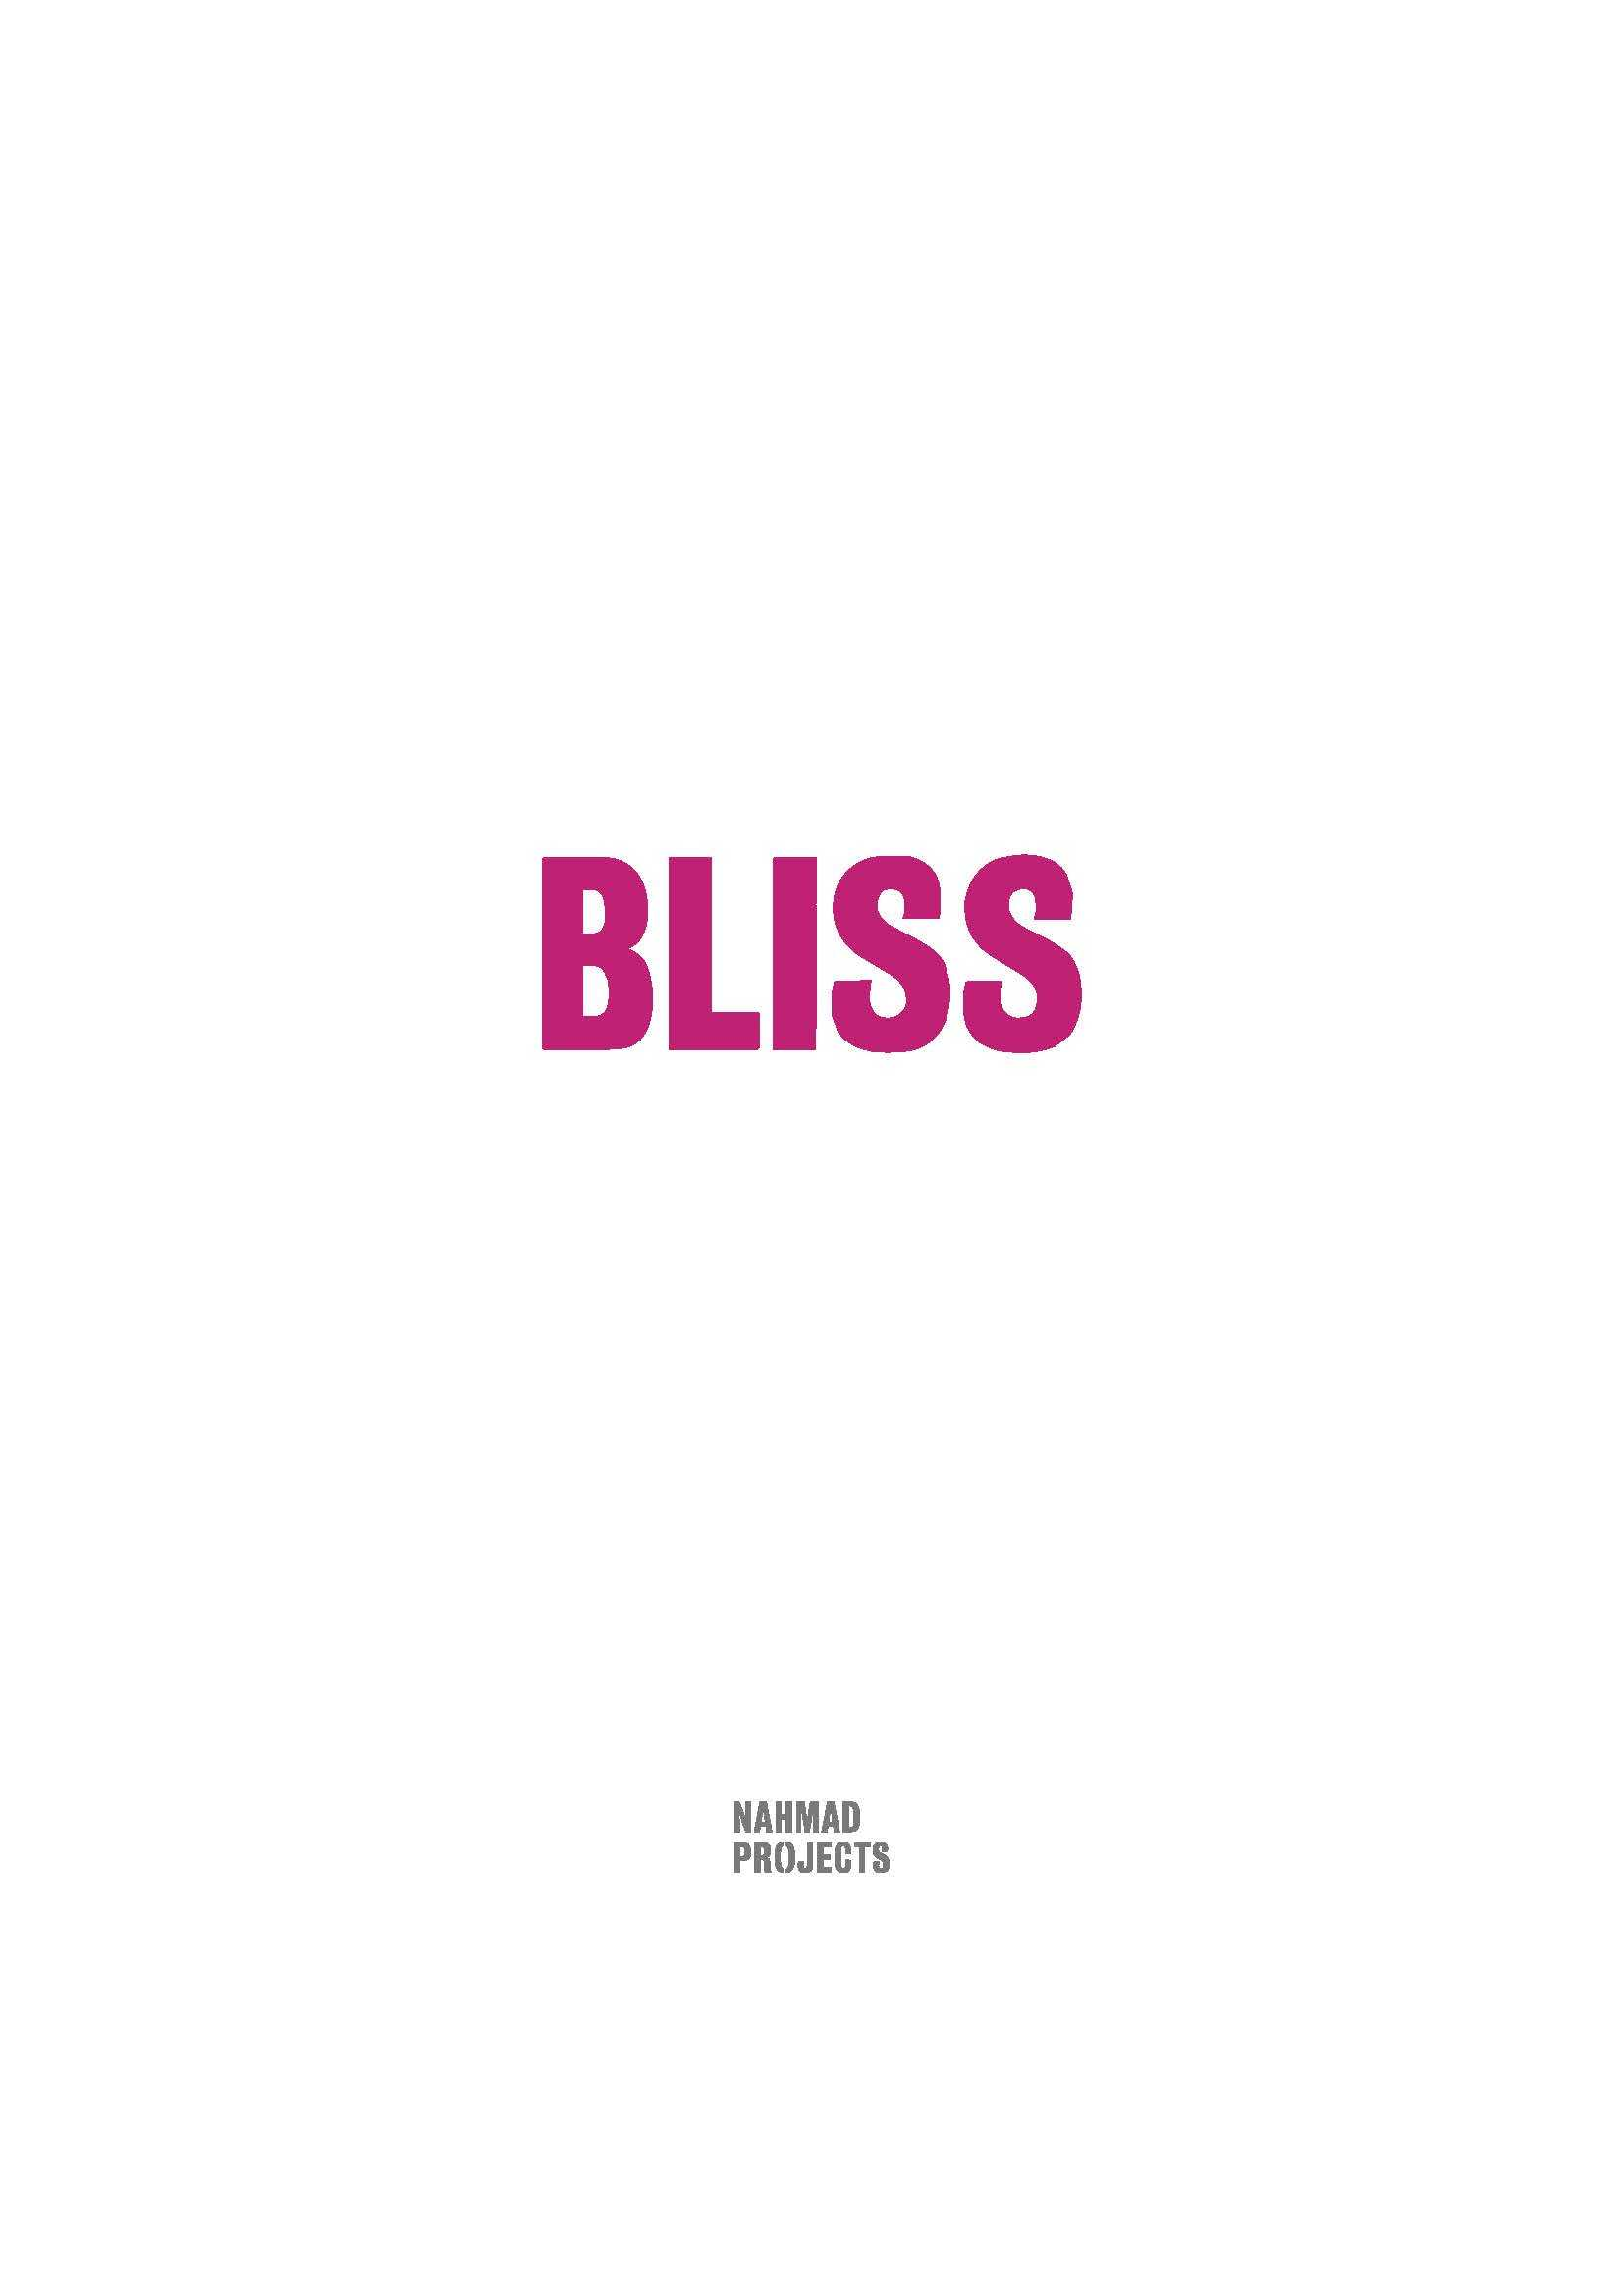 Nahmad Projects Bliss Catalogue Seite 01